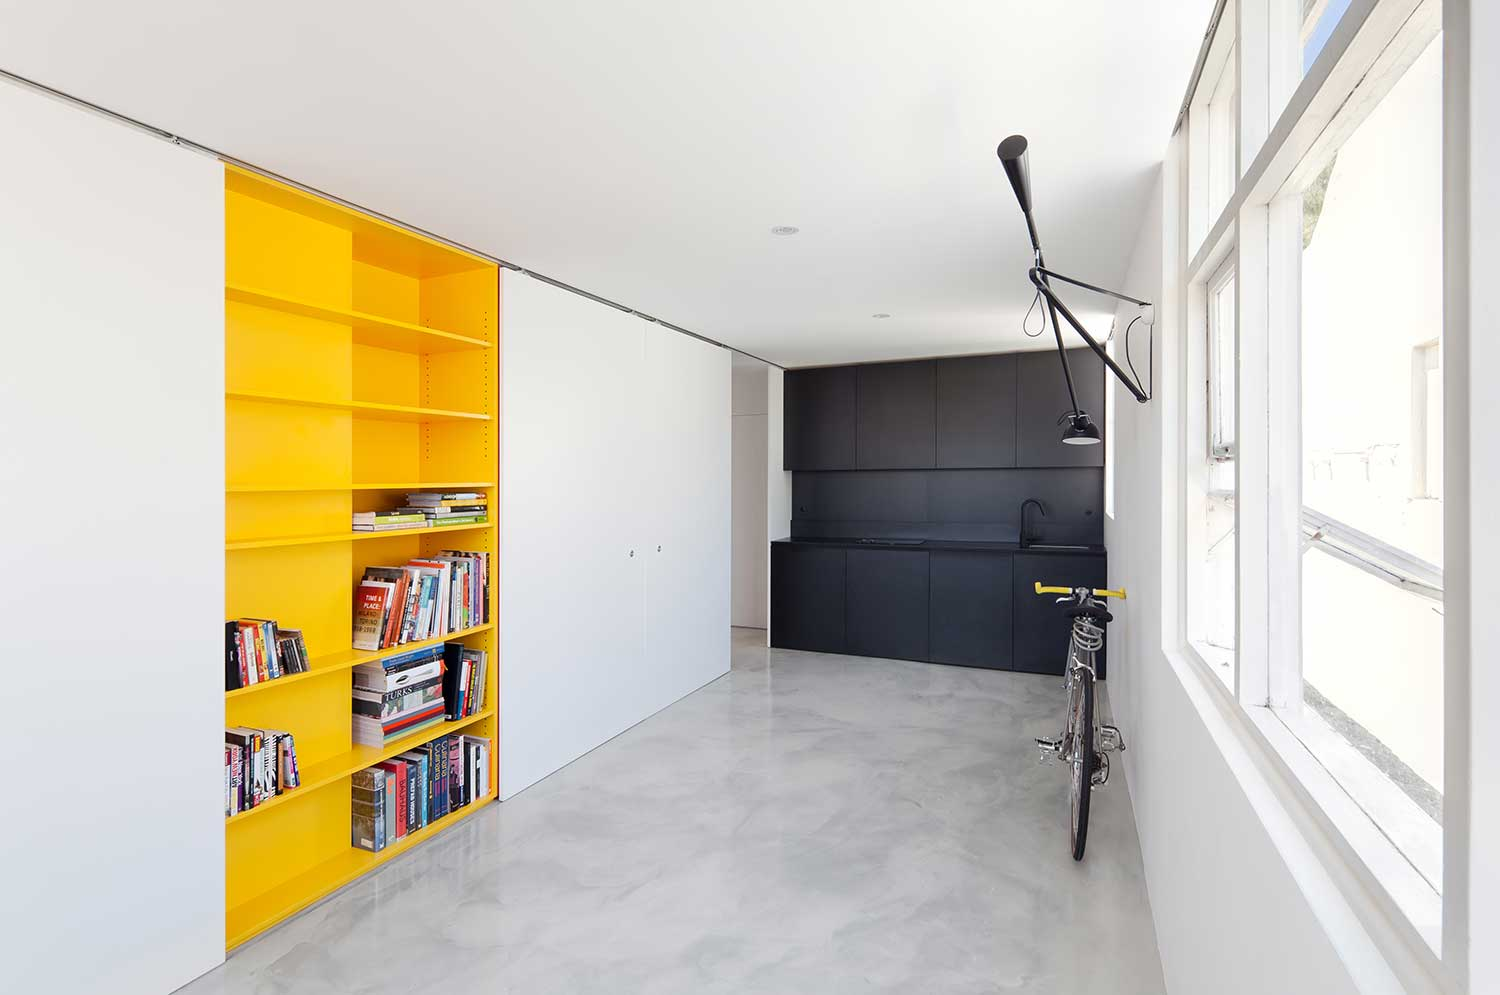 Studio Apartment Sydney the studio apartment, sydneynicholas gurney | yellowtrace